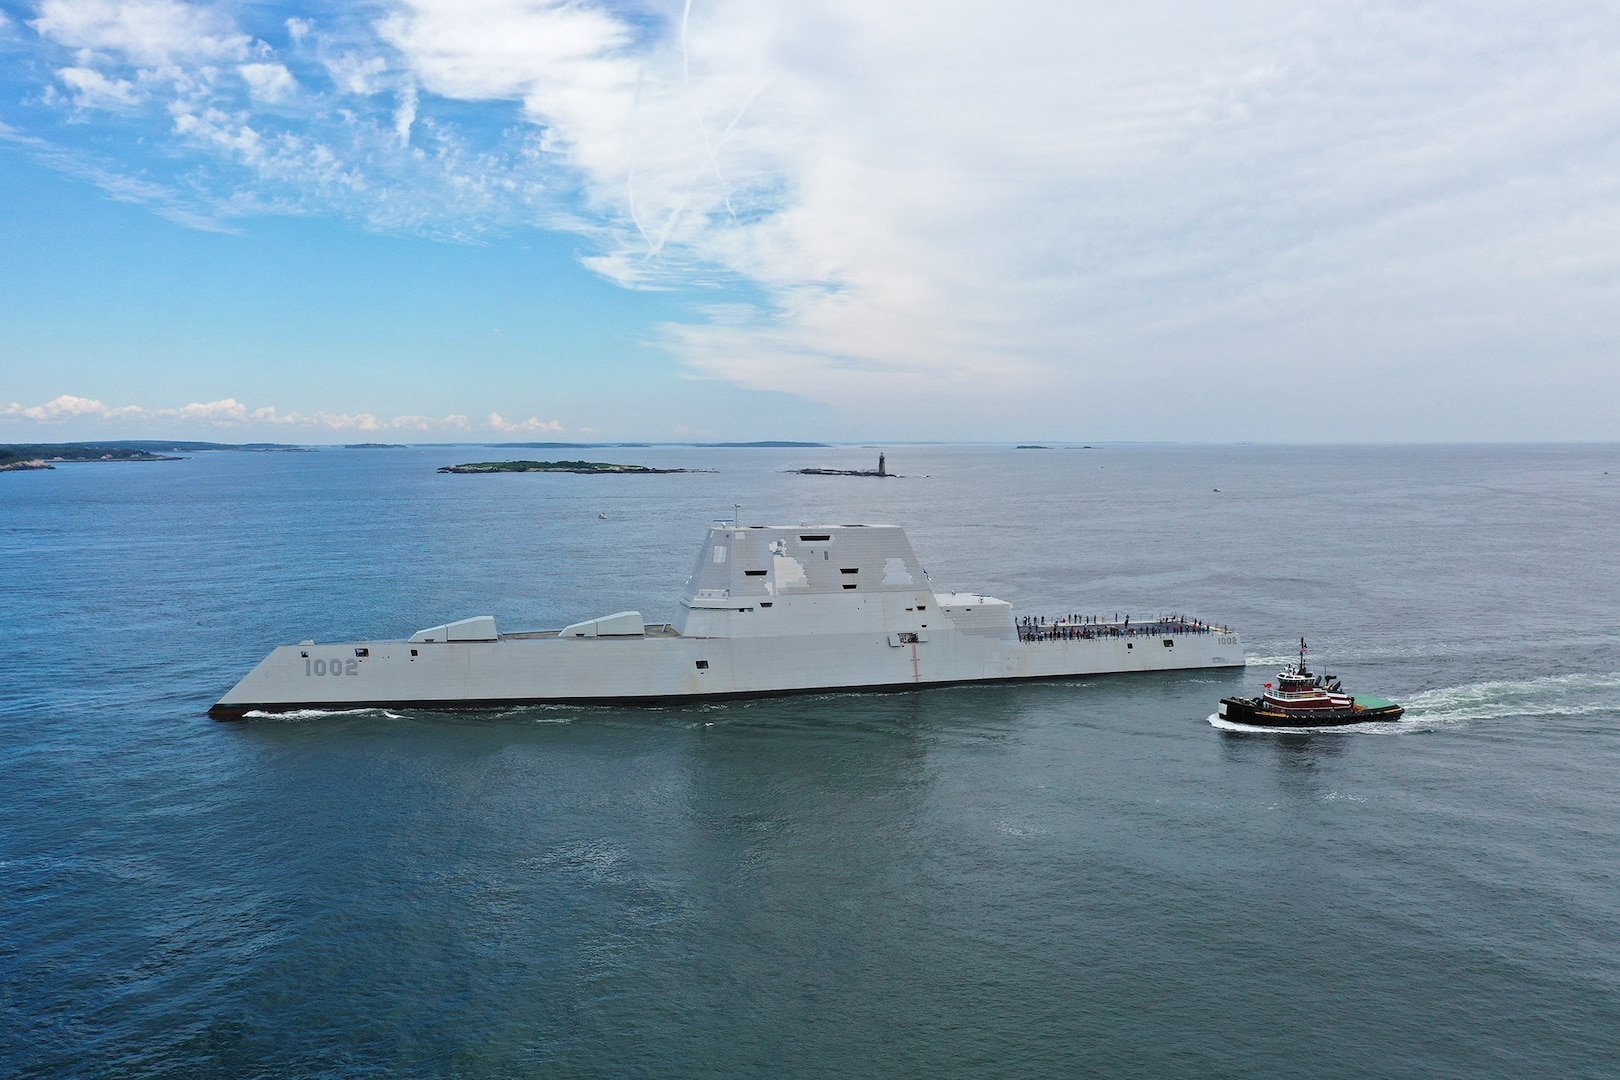 The future USS Lyndon B. Johnson (DDG 1002) recently conducted Builder's Trials. The future USS Lyndon B. Johnson is the third and final ship in the Zumwalt-class of guided missile destroyers and will provide multi-mission offensive and defensive capabilities to the fleet.